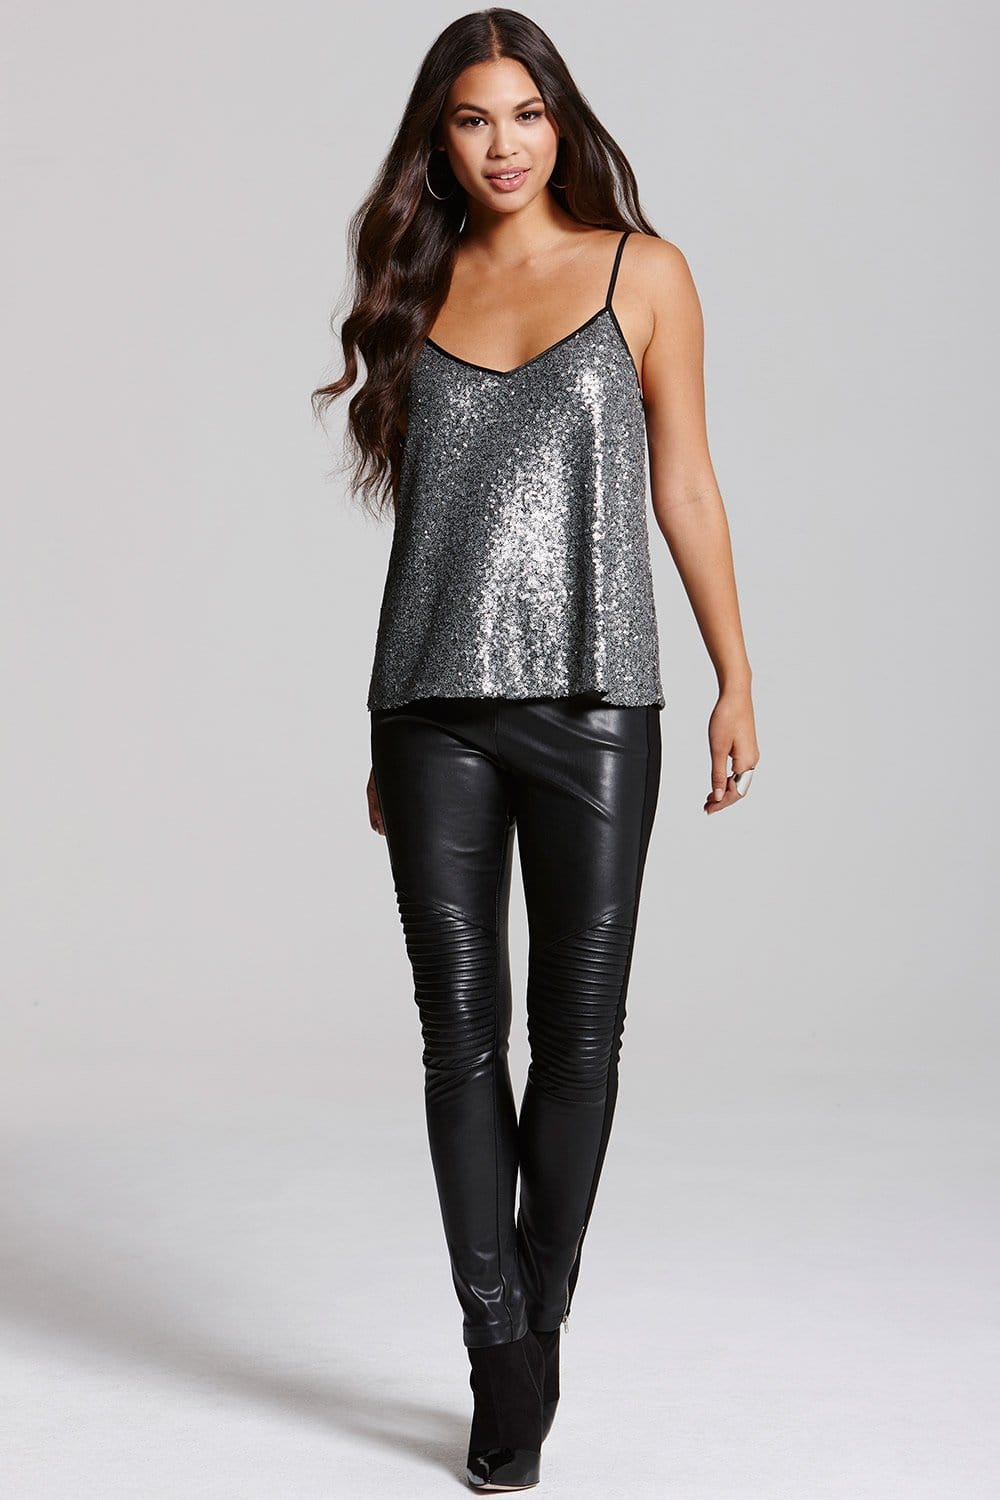 Outlet Girls On Film Silver Sequin Cami Top Outlet Girls